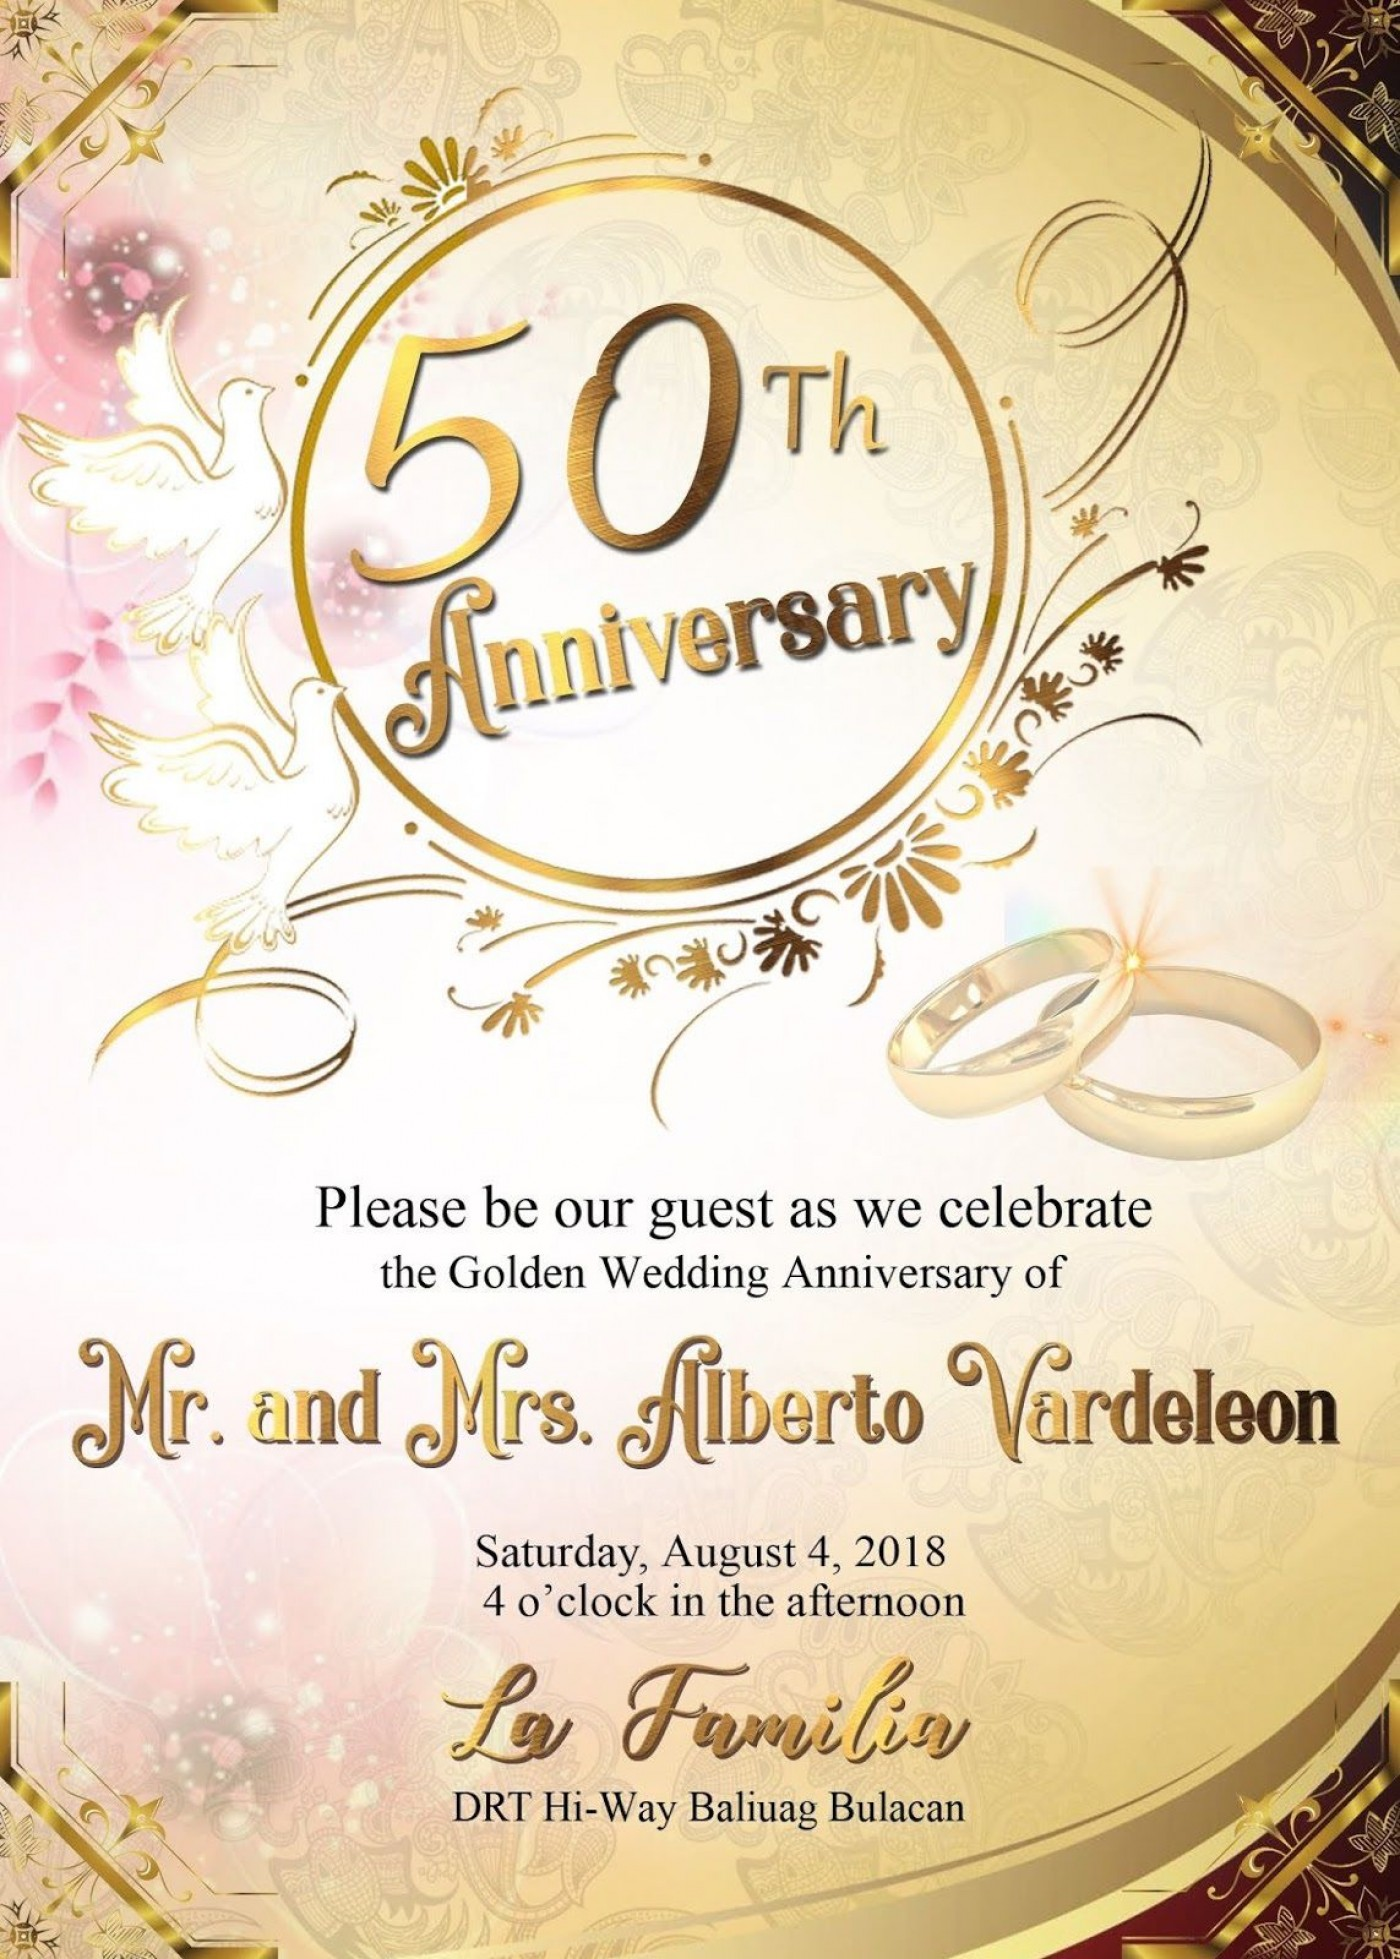 010 Stunning 50th Anniversary Party Invitation Template Example  Wedding Free Download Microsoft Word1400